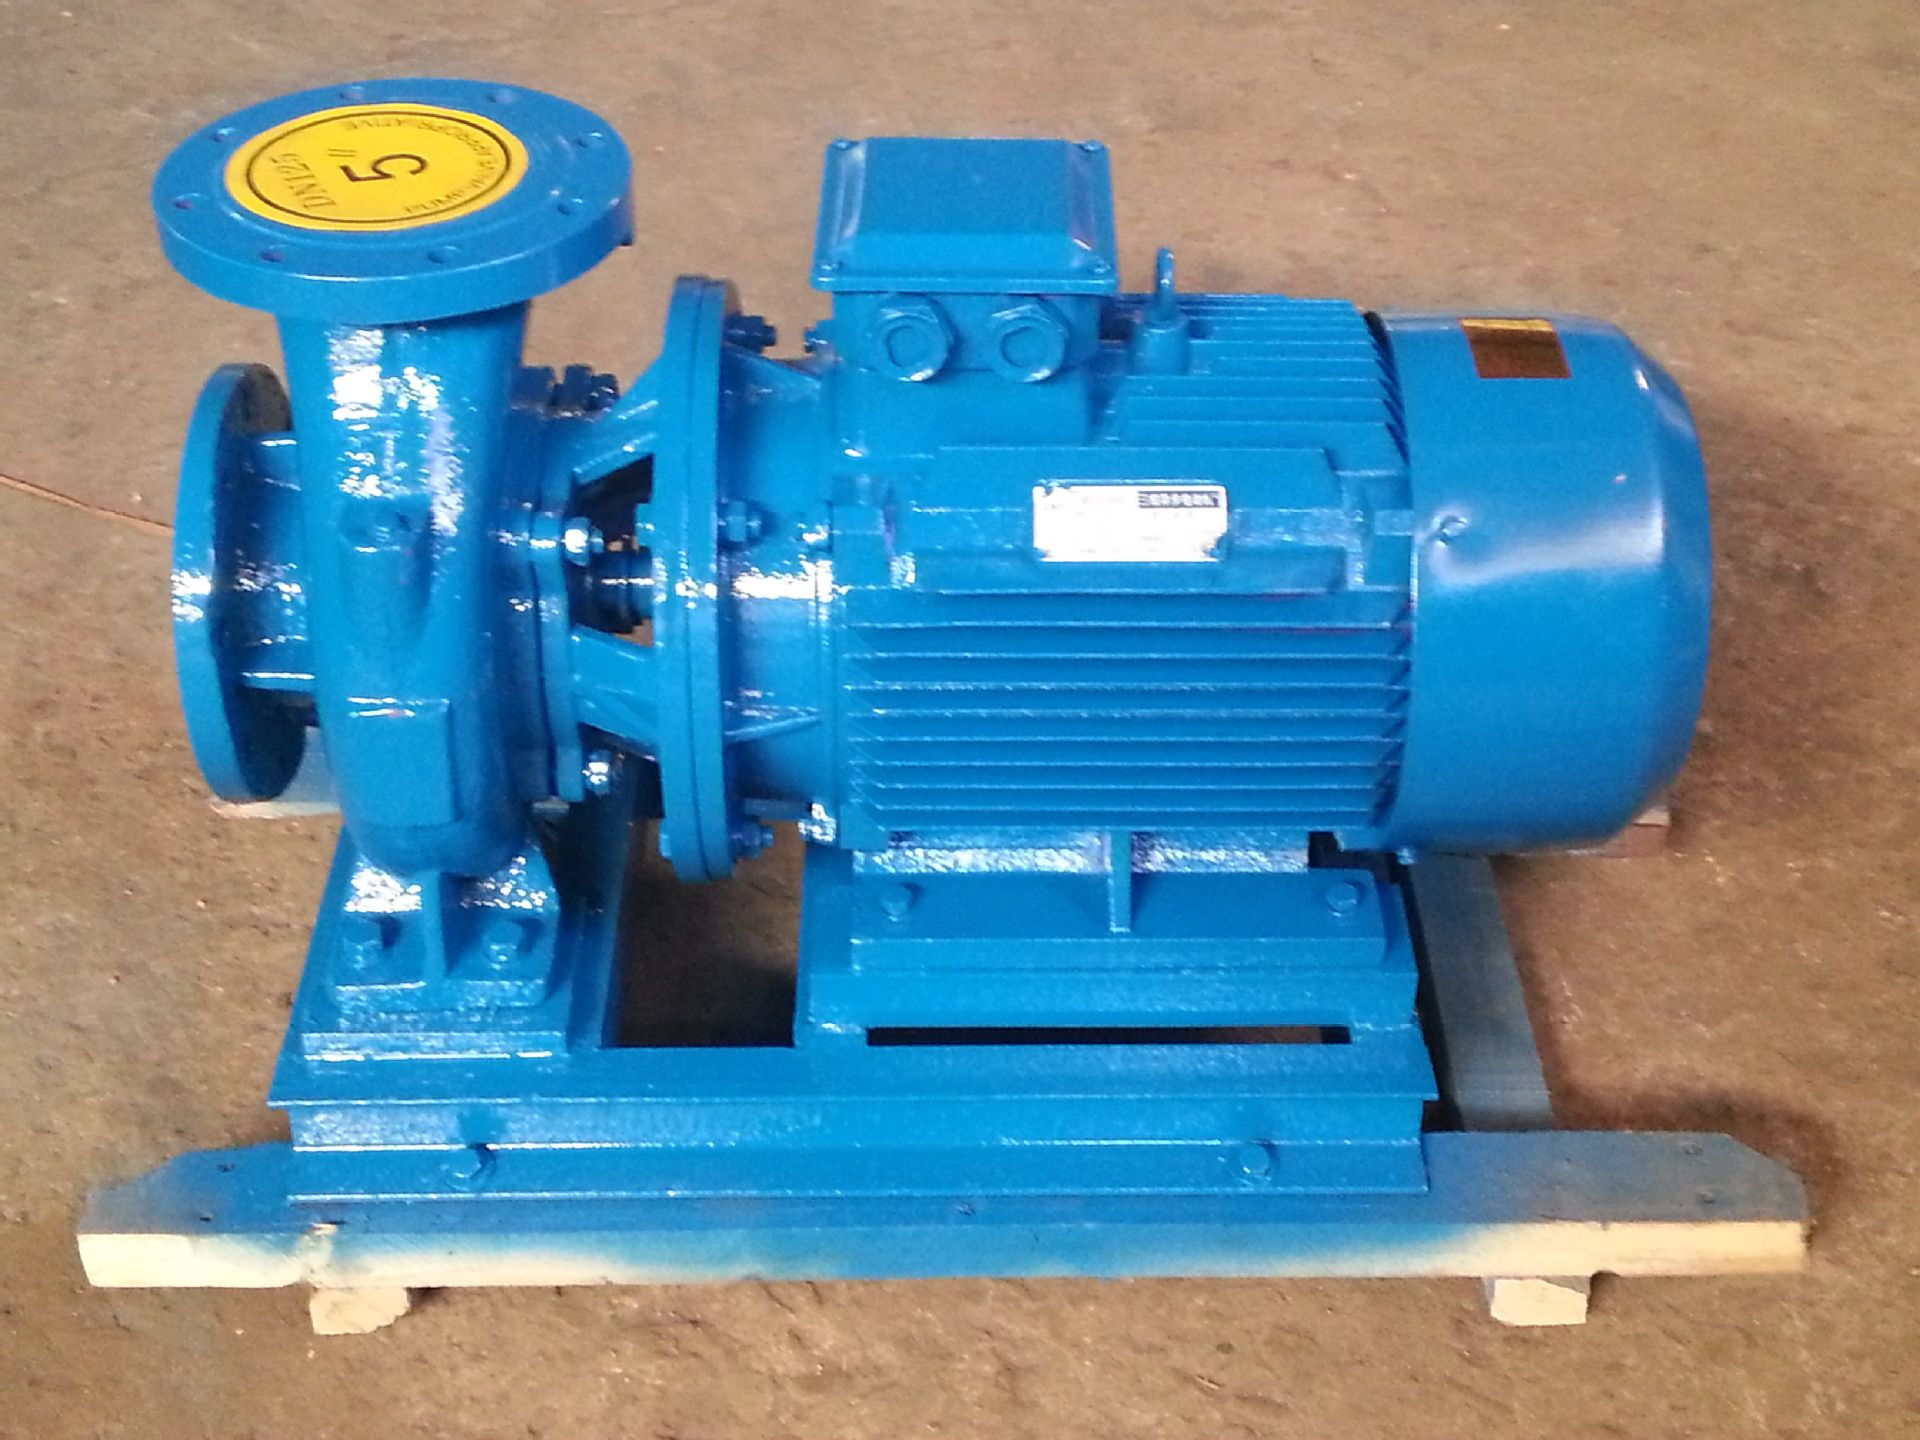 TS End Suction Water Pump is suitable for transporting